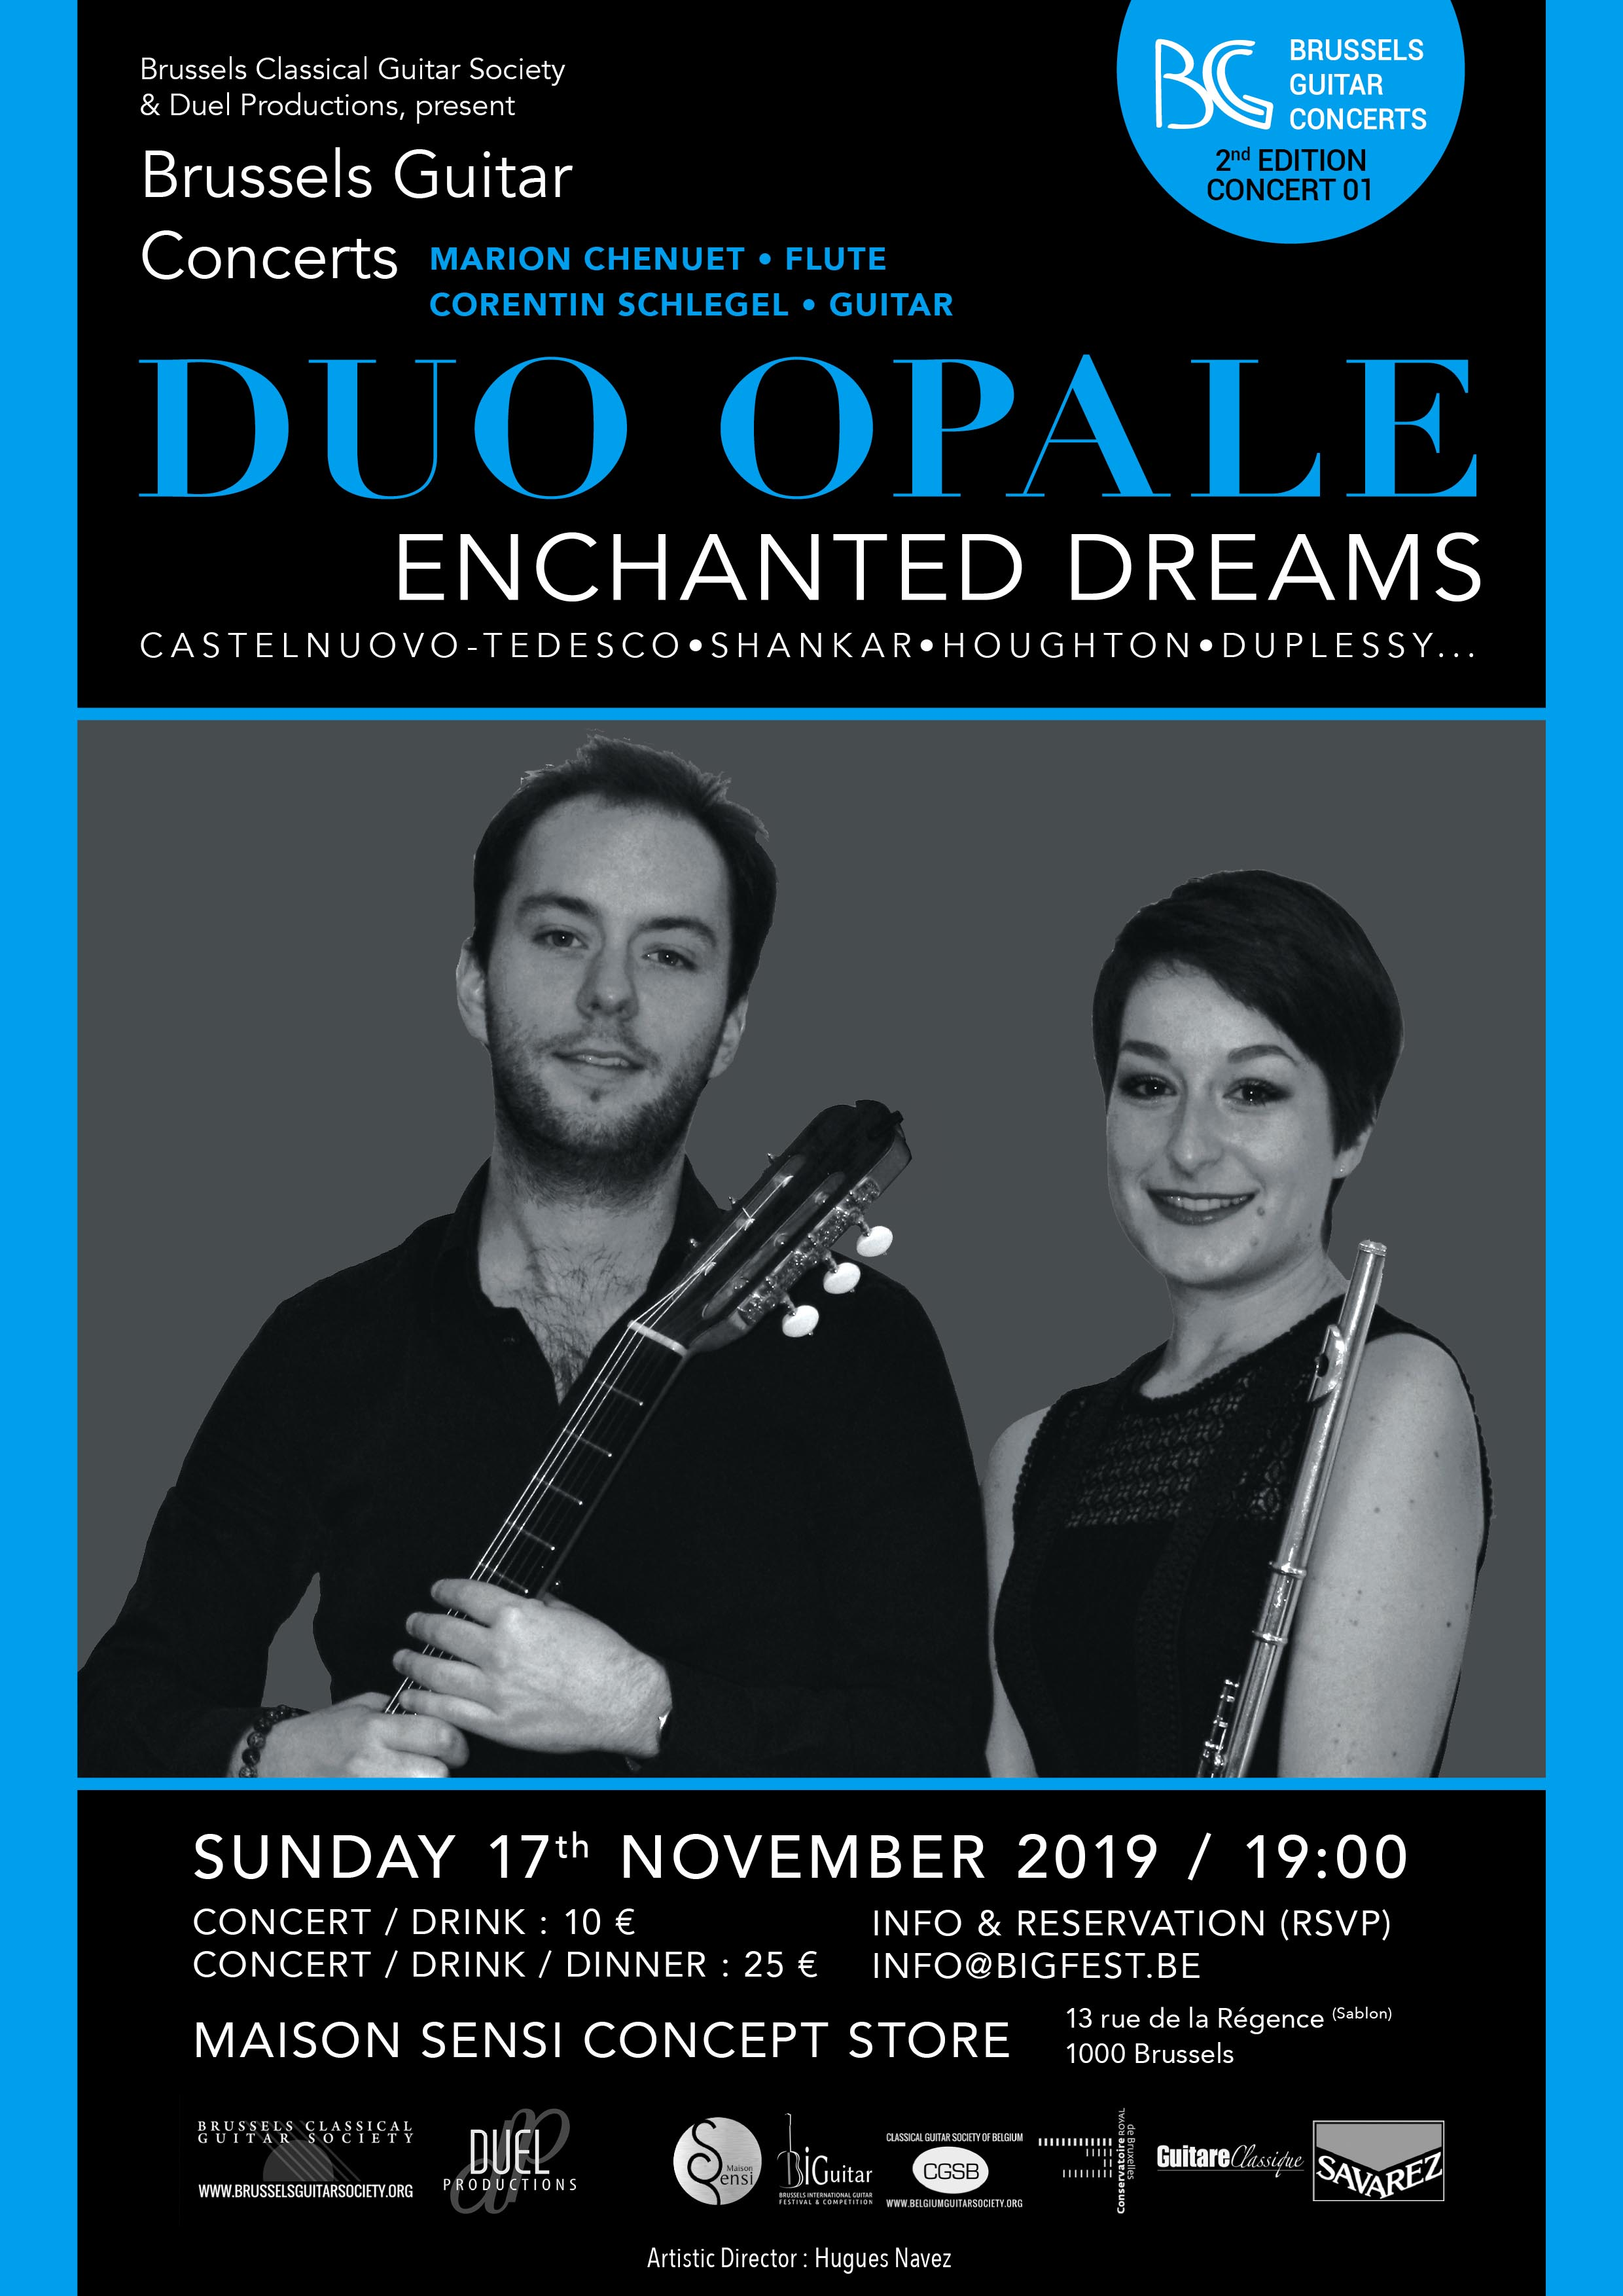 Duo Opale (Marion Chenuet & Corentin Schlegel) - « Enchanted Dreams » - Brussels Guitar Concerts